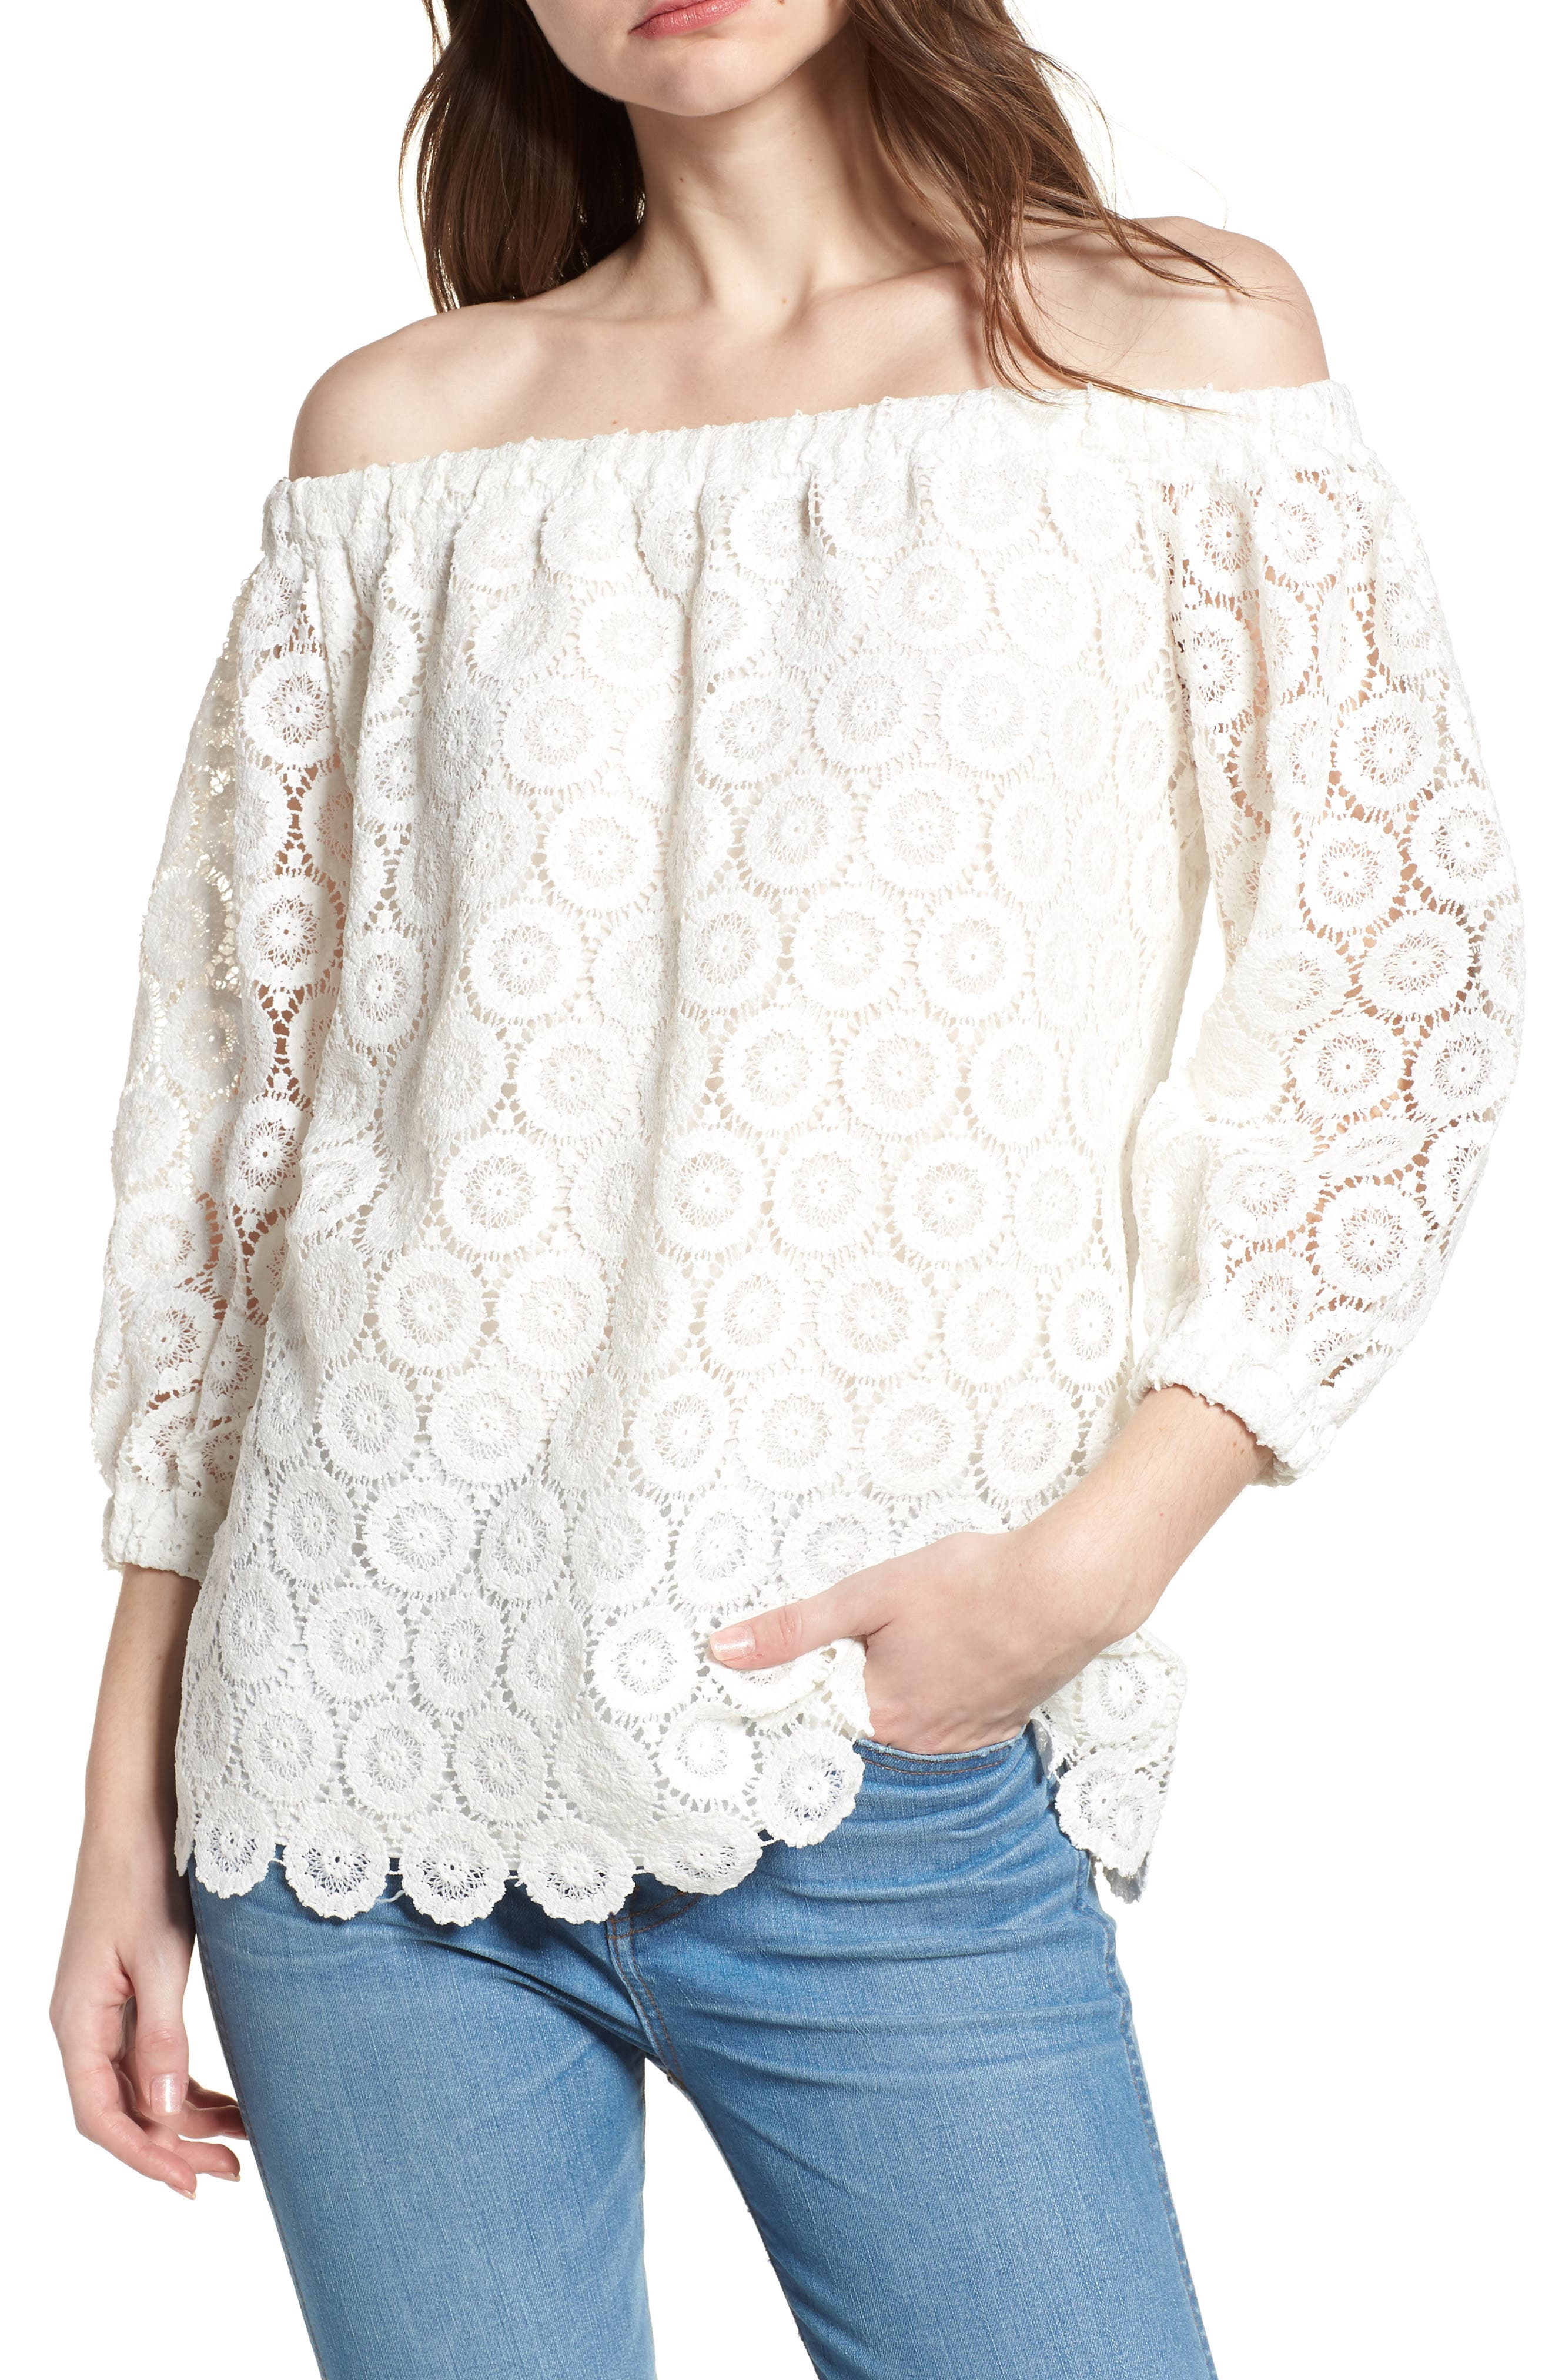 Bishop + Young Karlee Lace Off the Shoulder Top,                             Main thumbnail 1, color,                             White